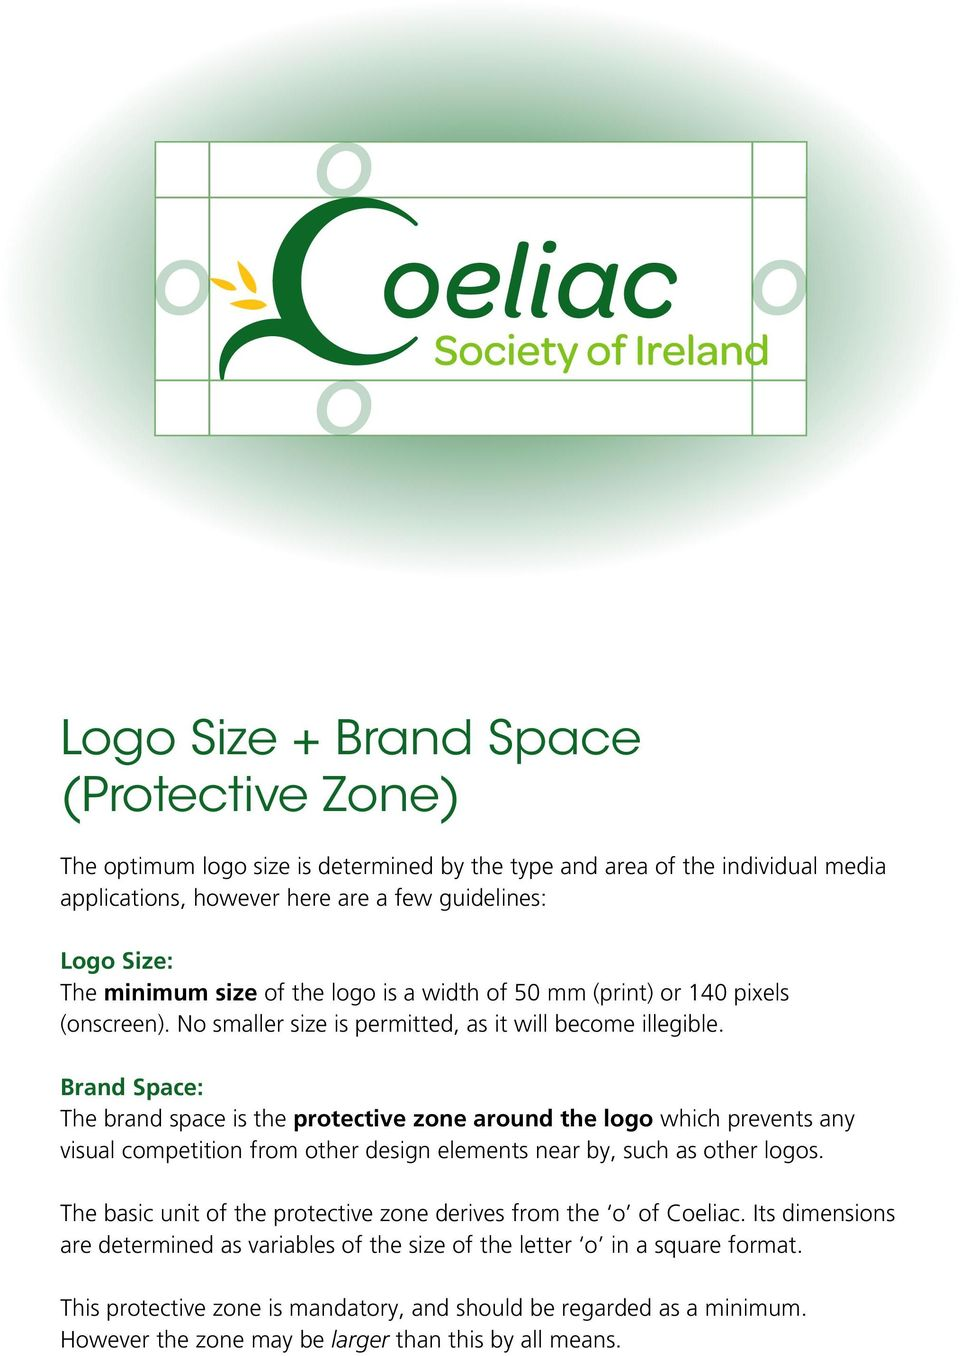 Brand Space: The brand space is the protective zone around the logo which prevents any visual competition from other design elements near by, such as other logos.